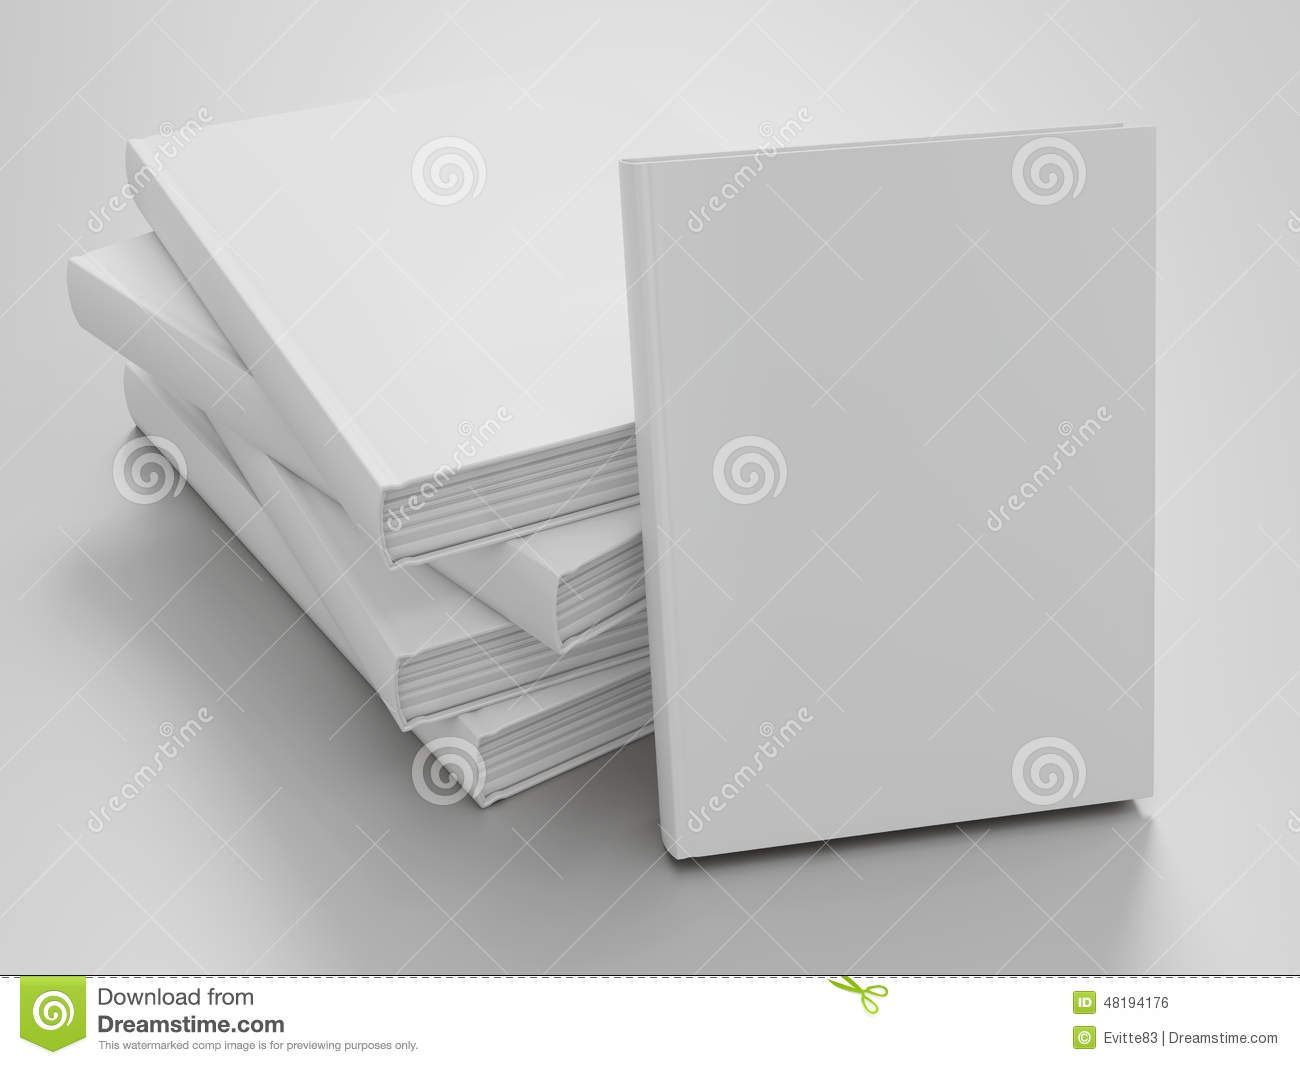 Empty book mockup template stock photo image of document 48194180 empty book mockup template royalty free stock image pronofoot35fo Images